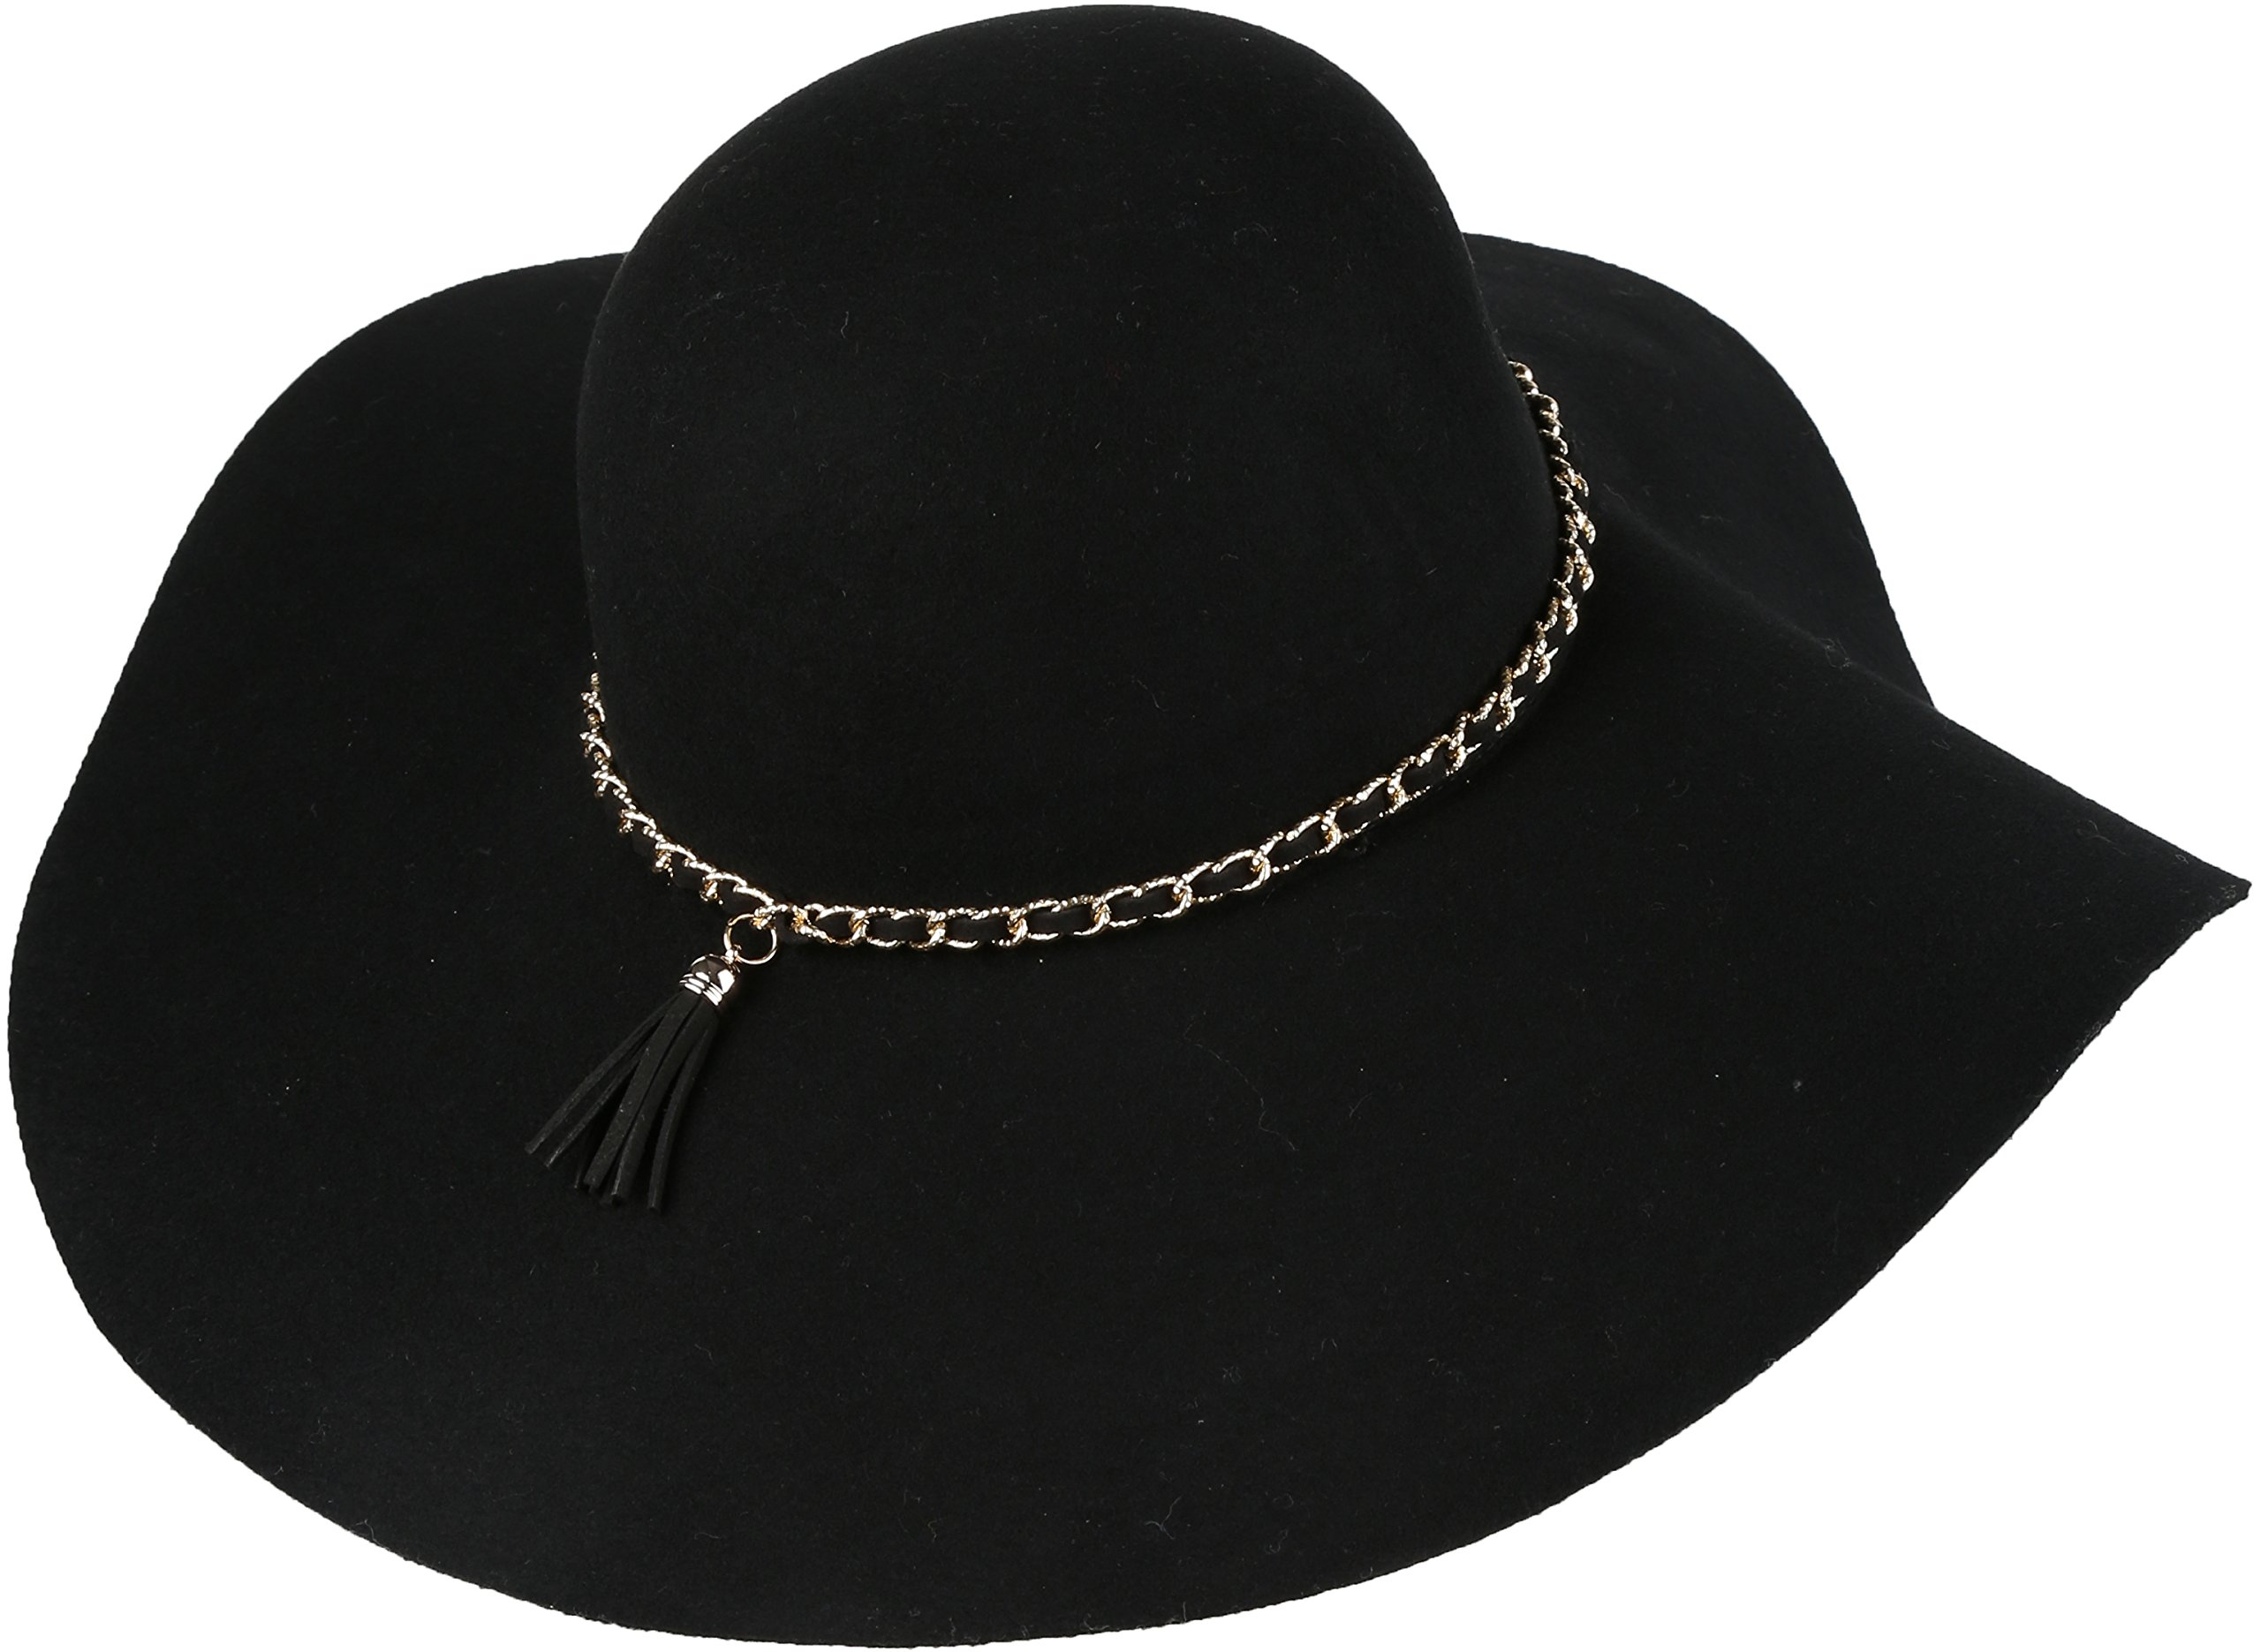 Sakkas 16154 - Liuliu Wide Vintage Style Floppy Hat Removable Interchangeable Bow Ribbon - Black - OS